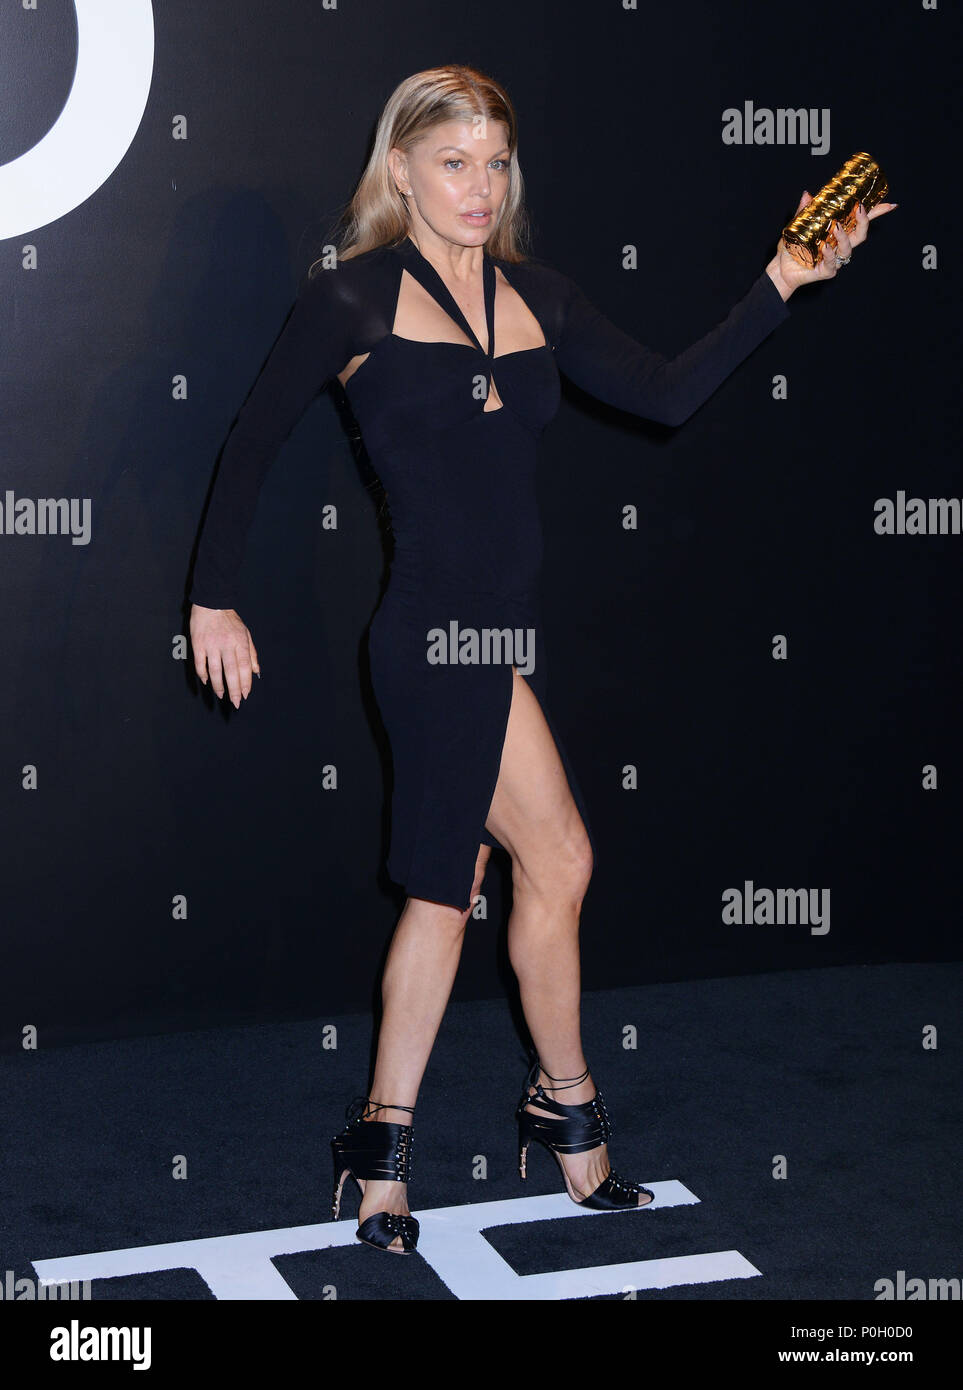 95d8cf1a15a Sarah Ferguson ( Fergie ) 130 at the Tom Ford Autumn Winter 2015 Collection  at the Milk Studio lot in Los Angeles. February 20